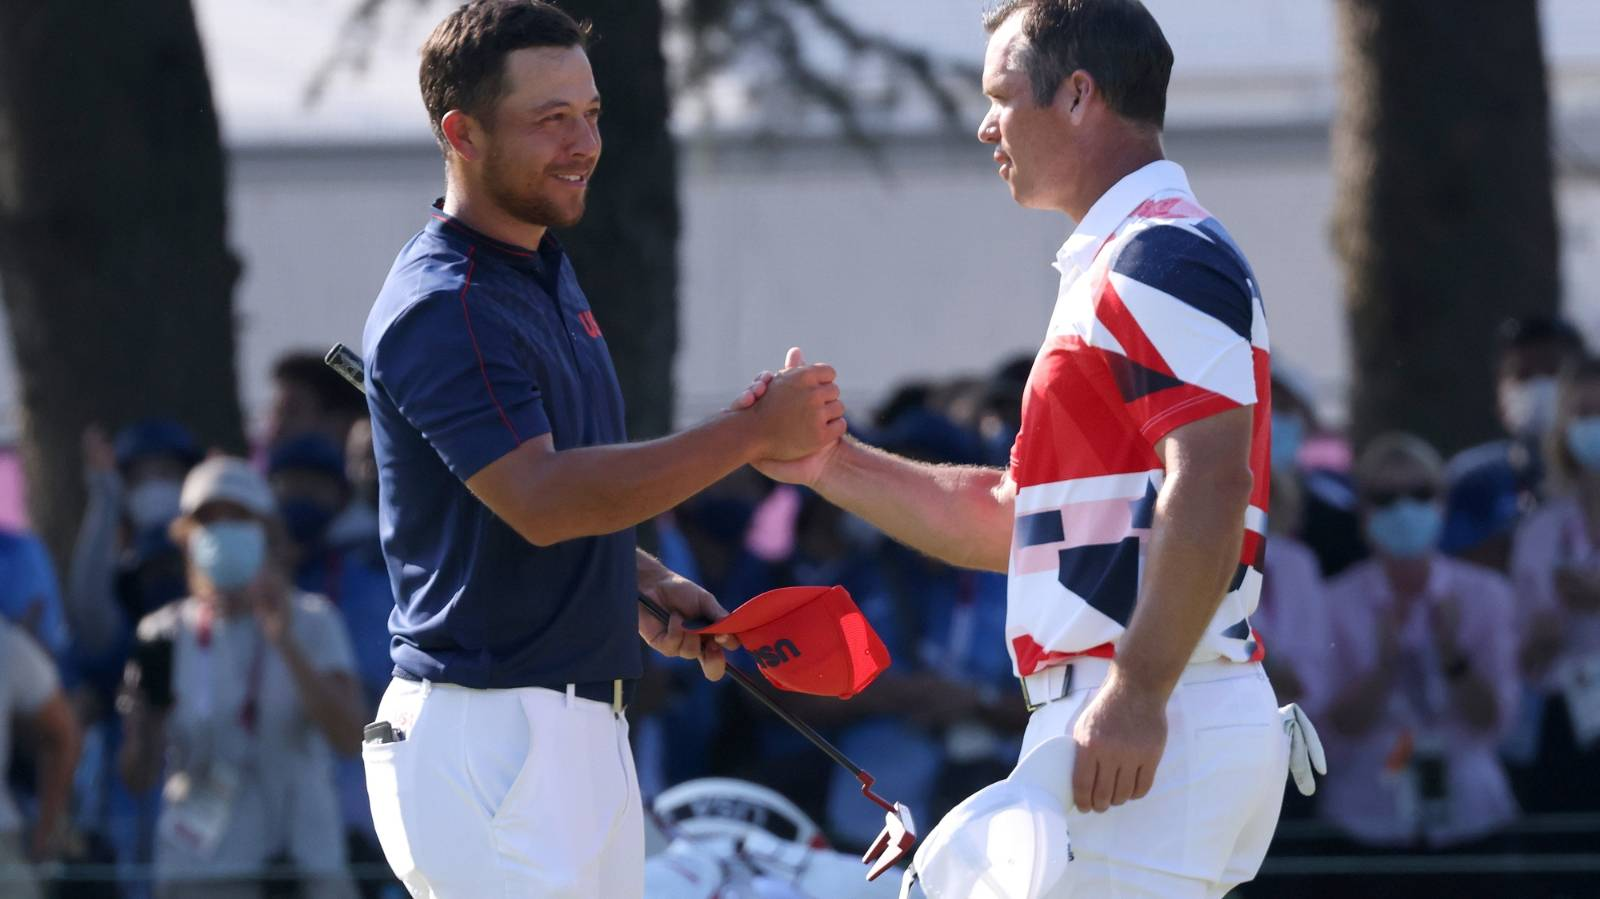 Xander Schauffele wins Olympic gold, bronze decided in seven-way playoff